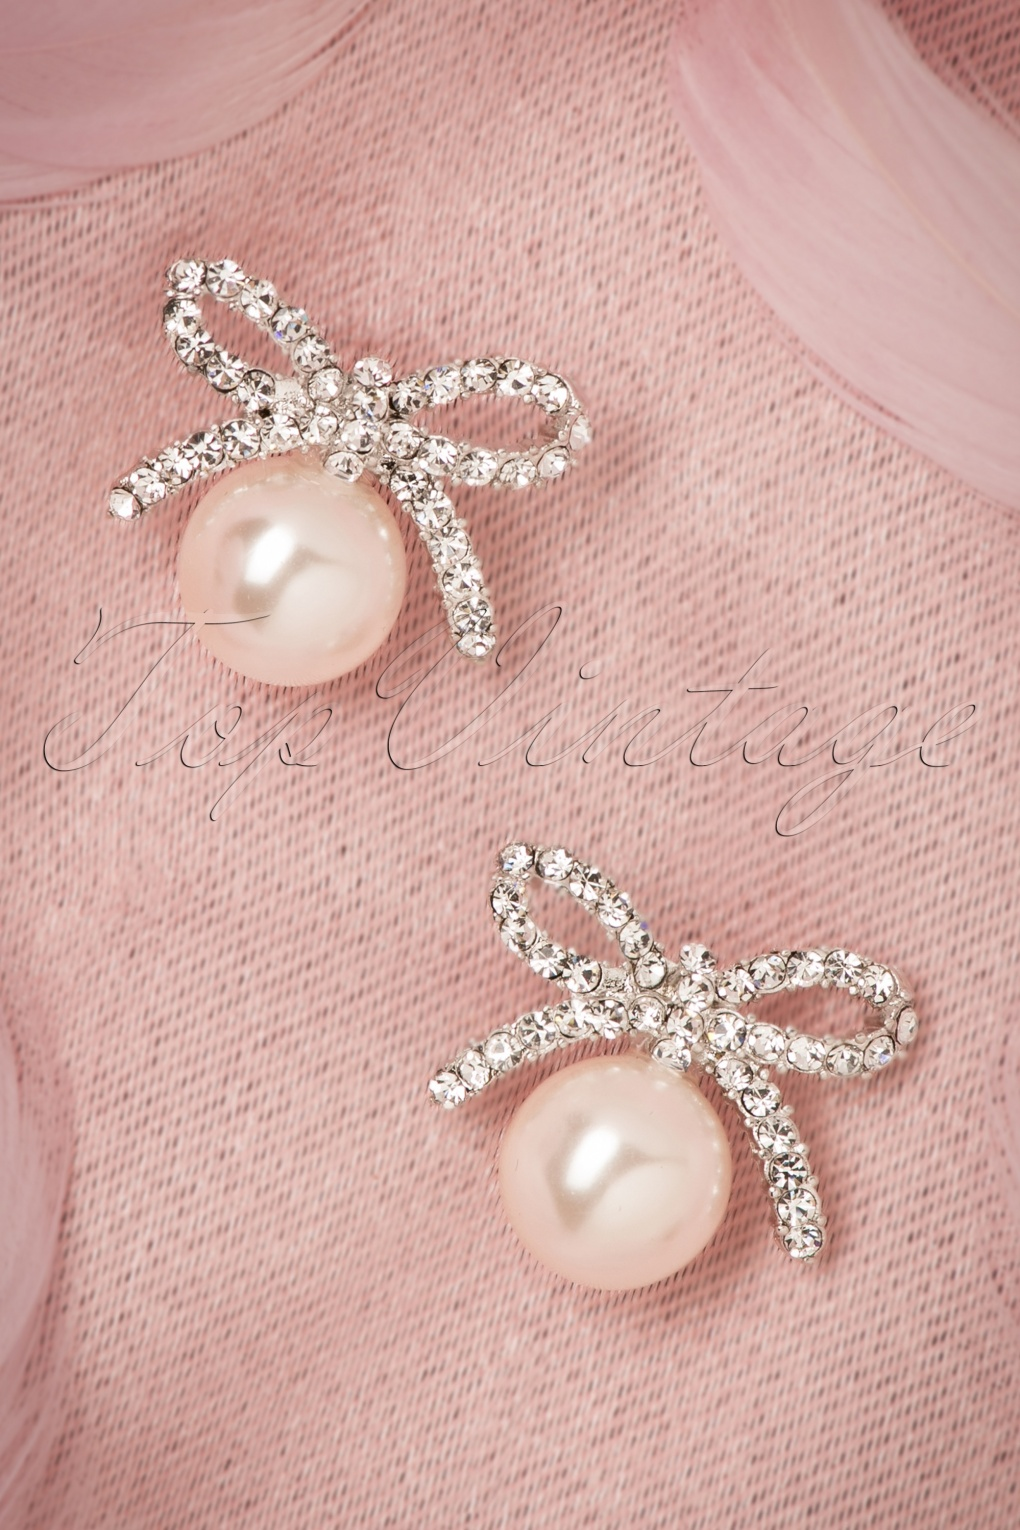 New 1940s Costume Jewelry: Necklaces, Earrings, Pins 40s Pearl and Delicate Bow Earrings in Silver £15.34 AT vintagedancer.com